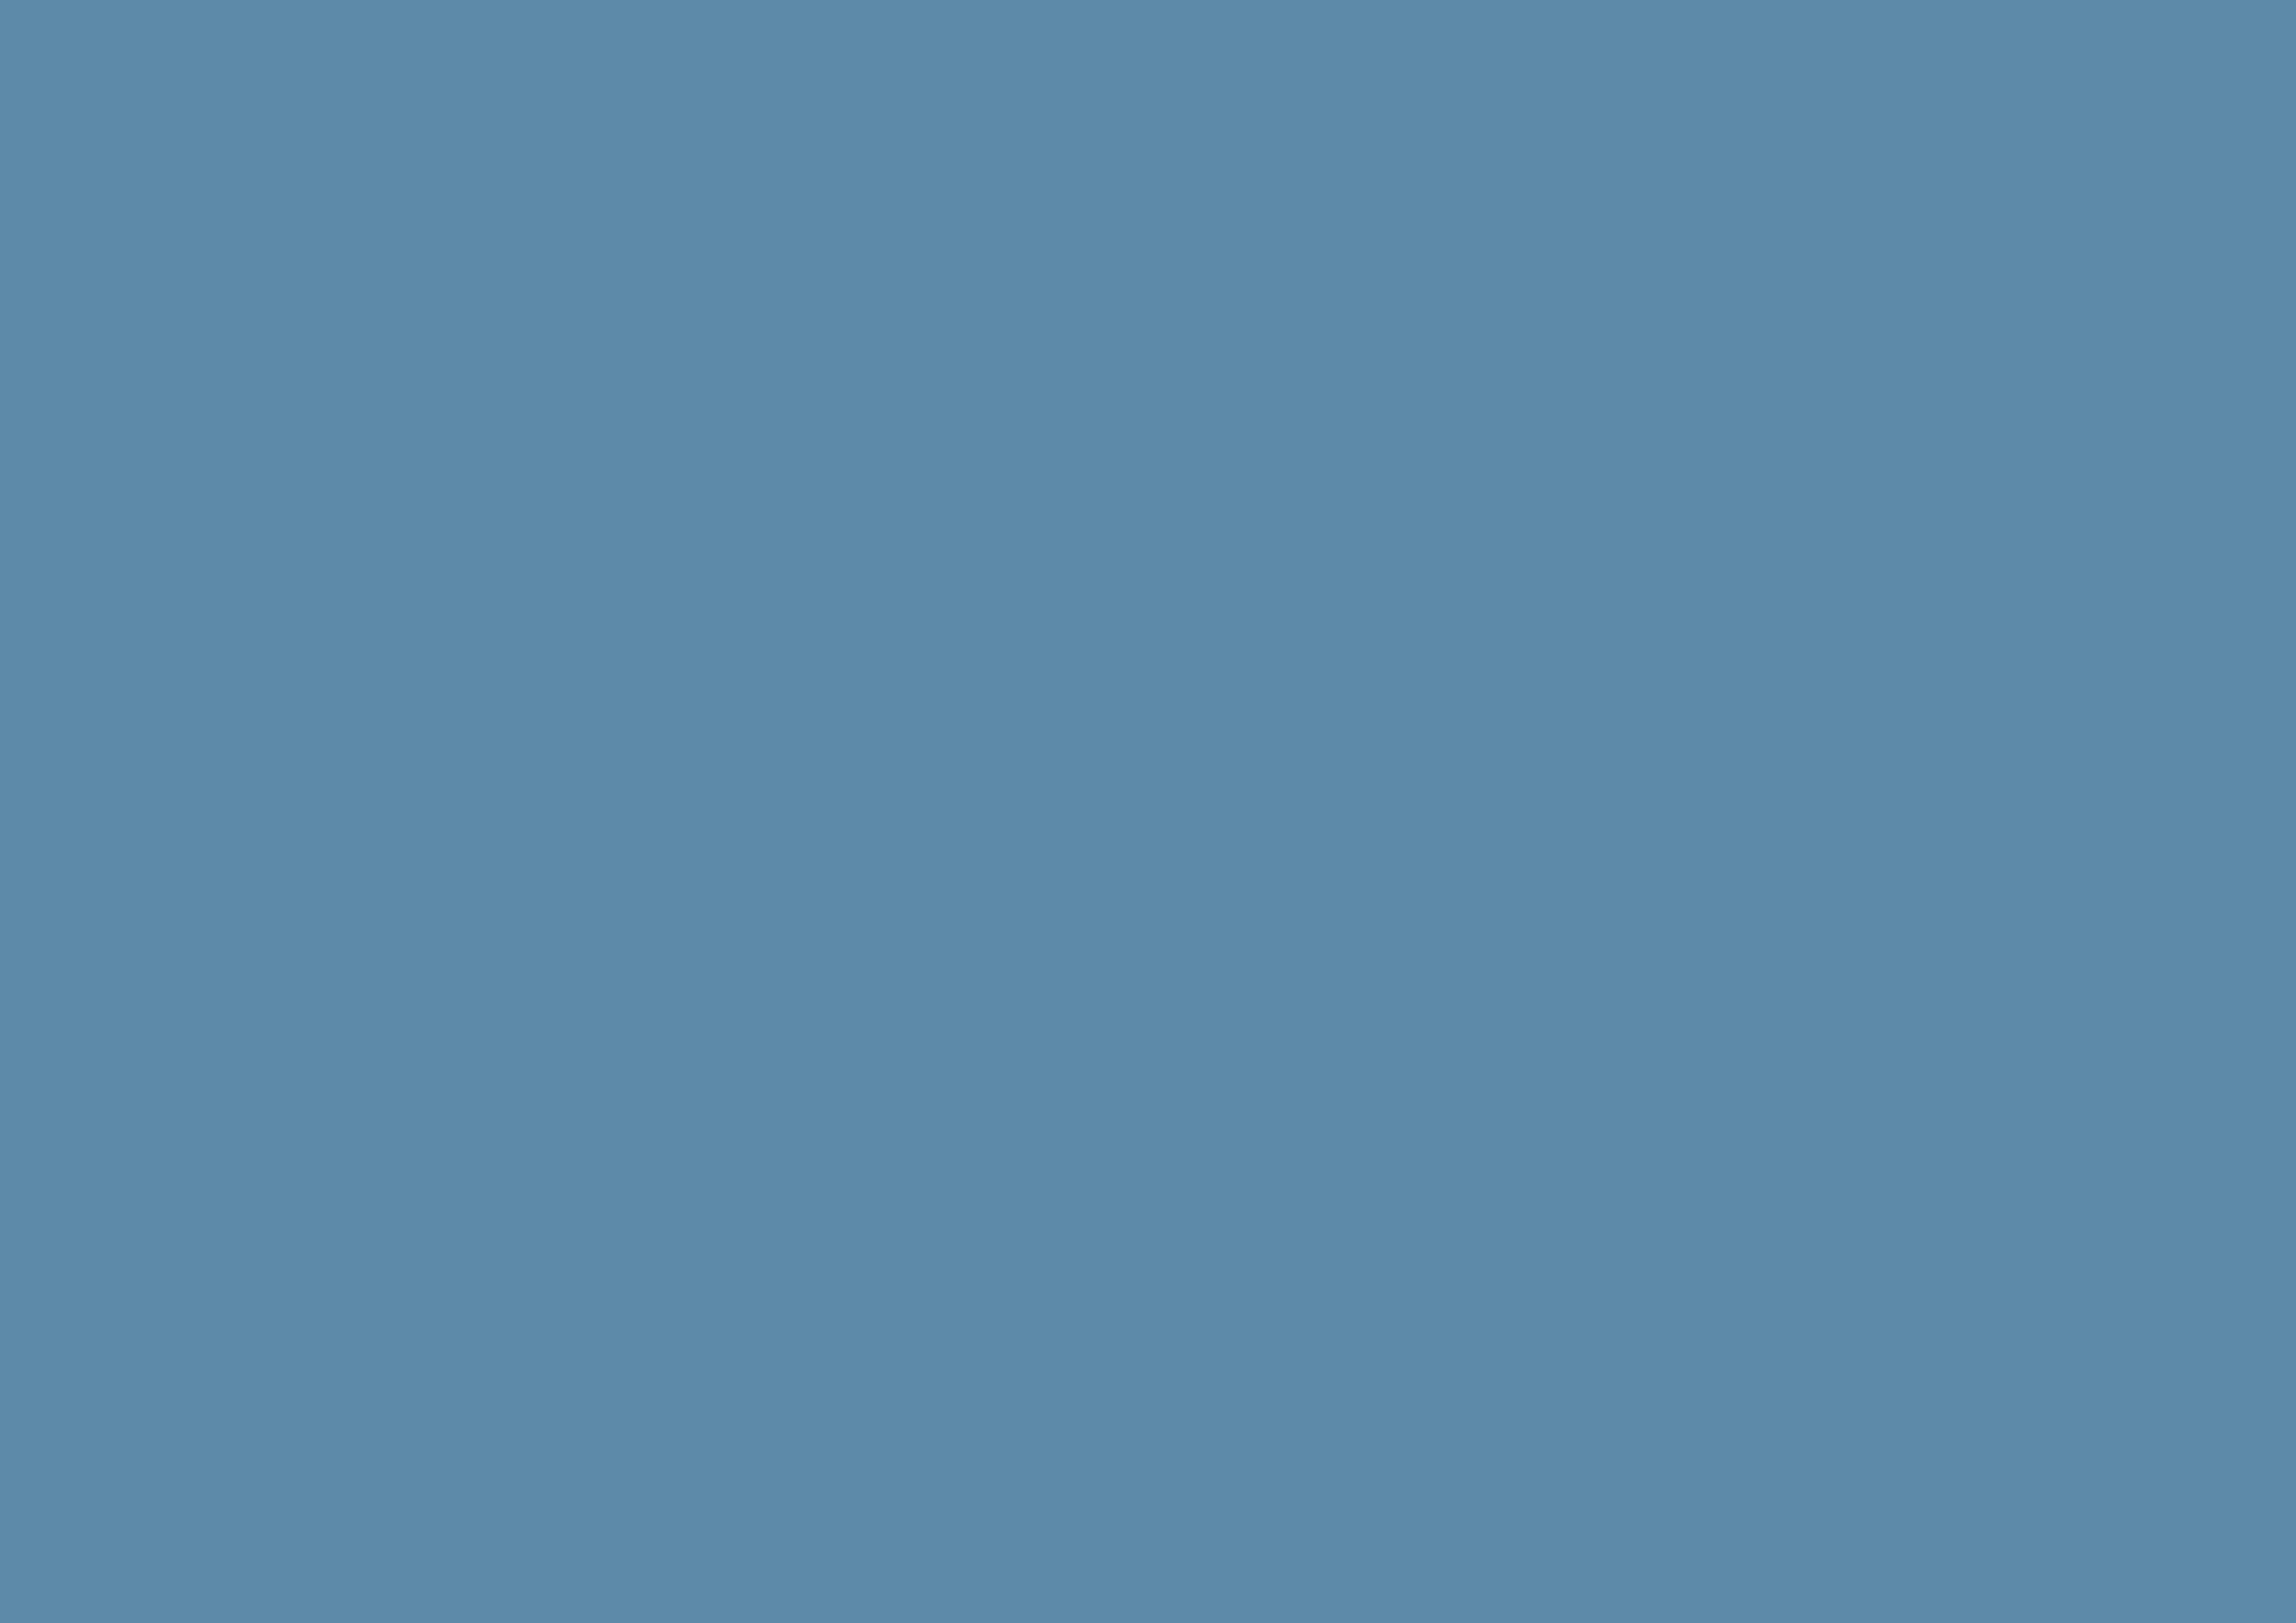 3508x2480 Air Force Blue Solid Color Background